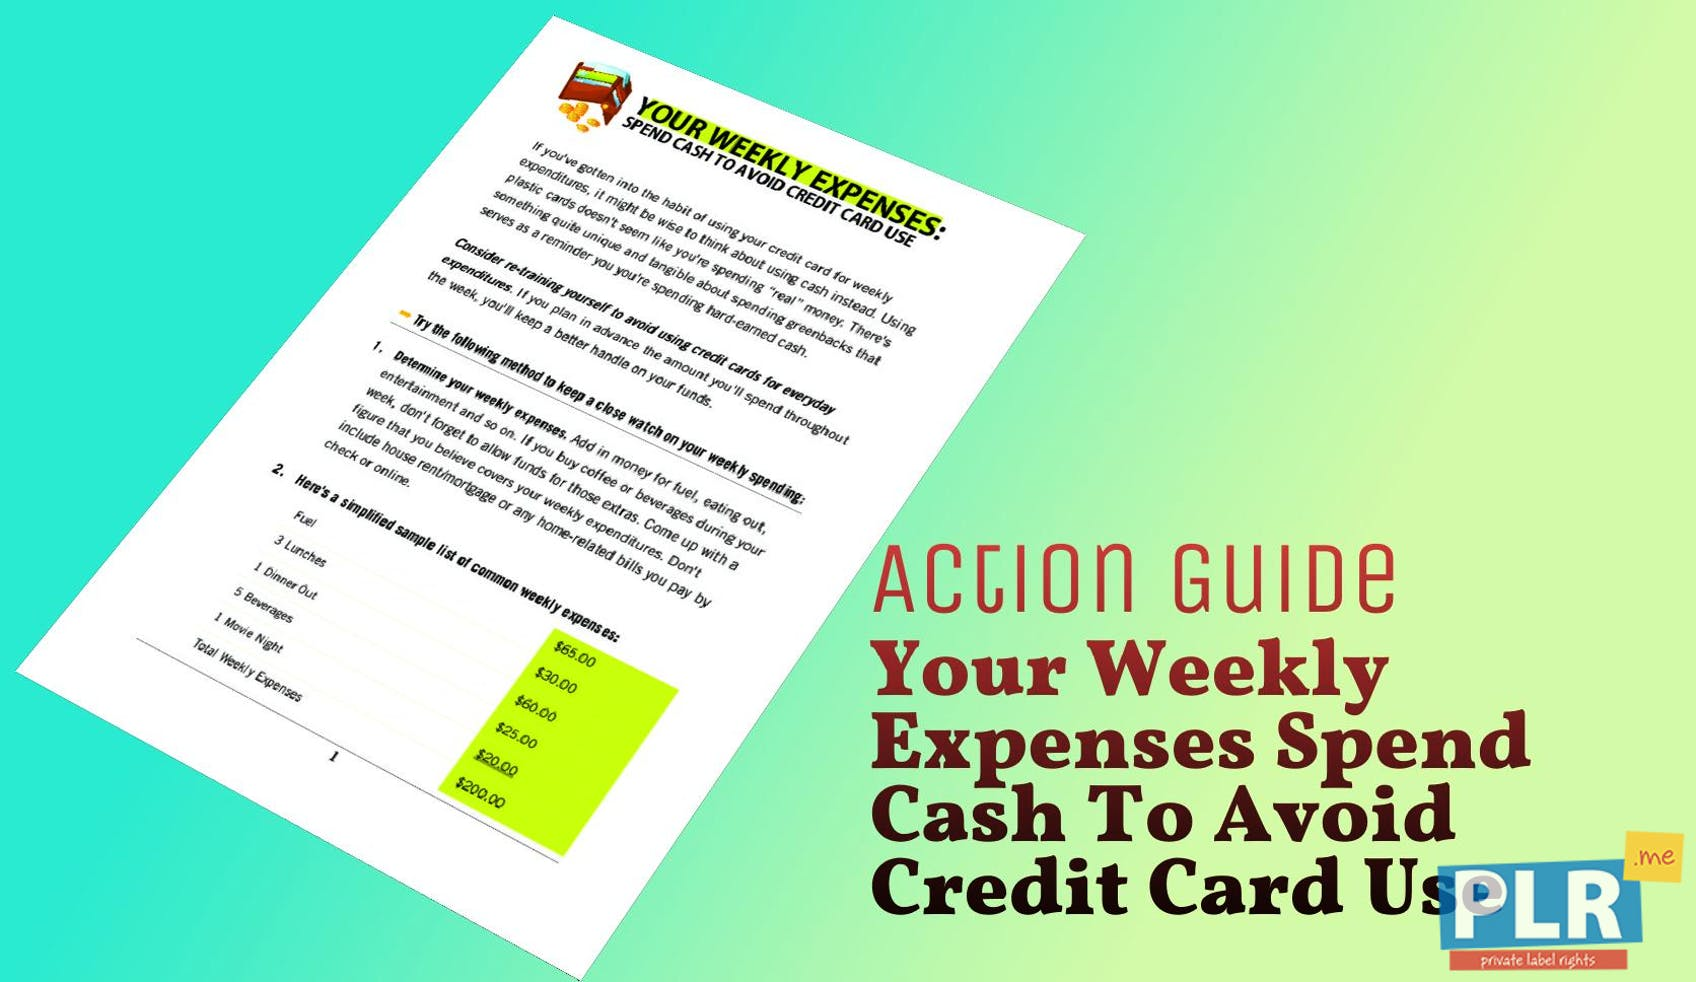 Your Weekly Expenses Spend Cash To Avoid Credit Card Use